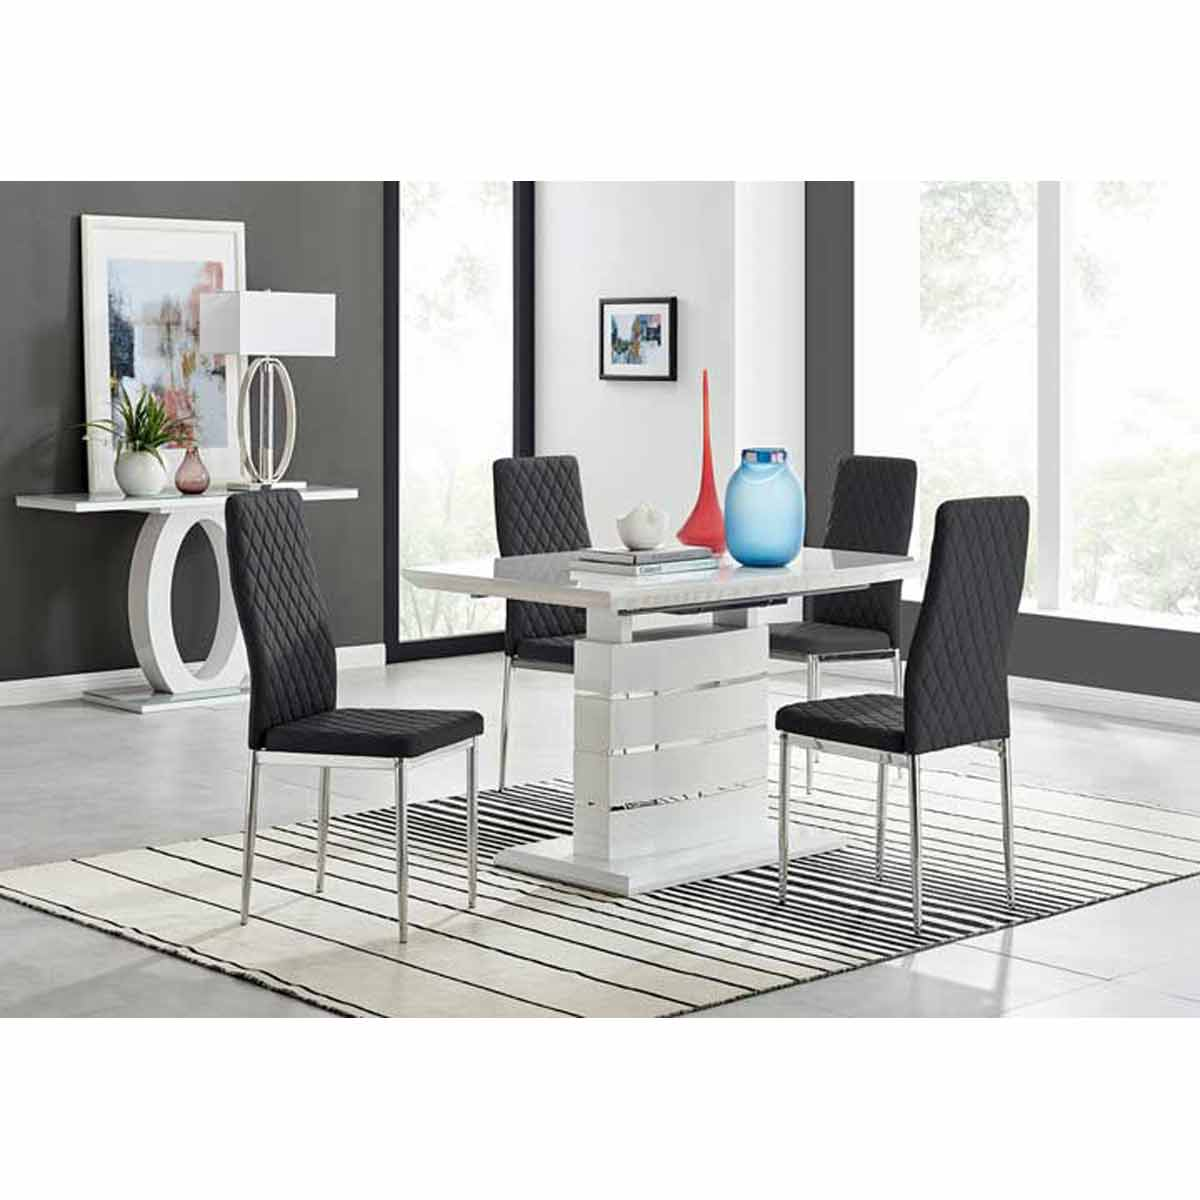 Furniture Box Renato 120cm High Gloss Extending Dining Table and 4 Black Milan Chairs